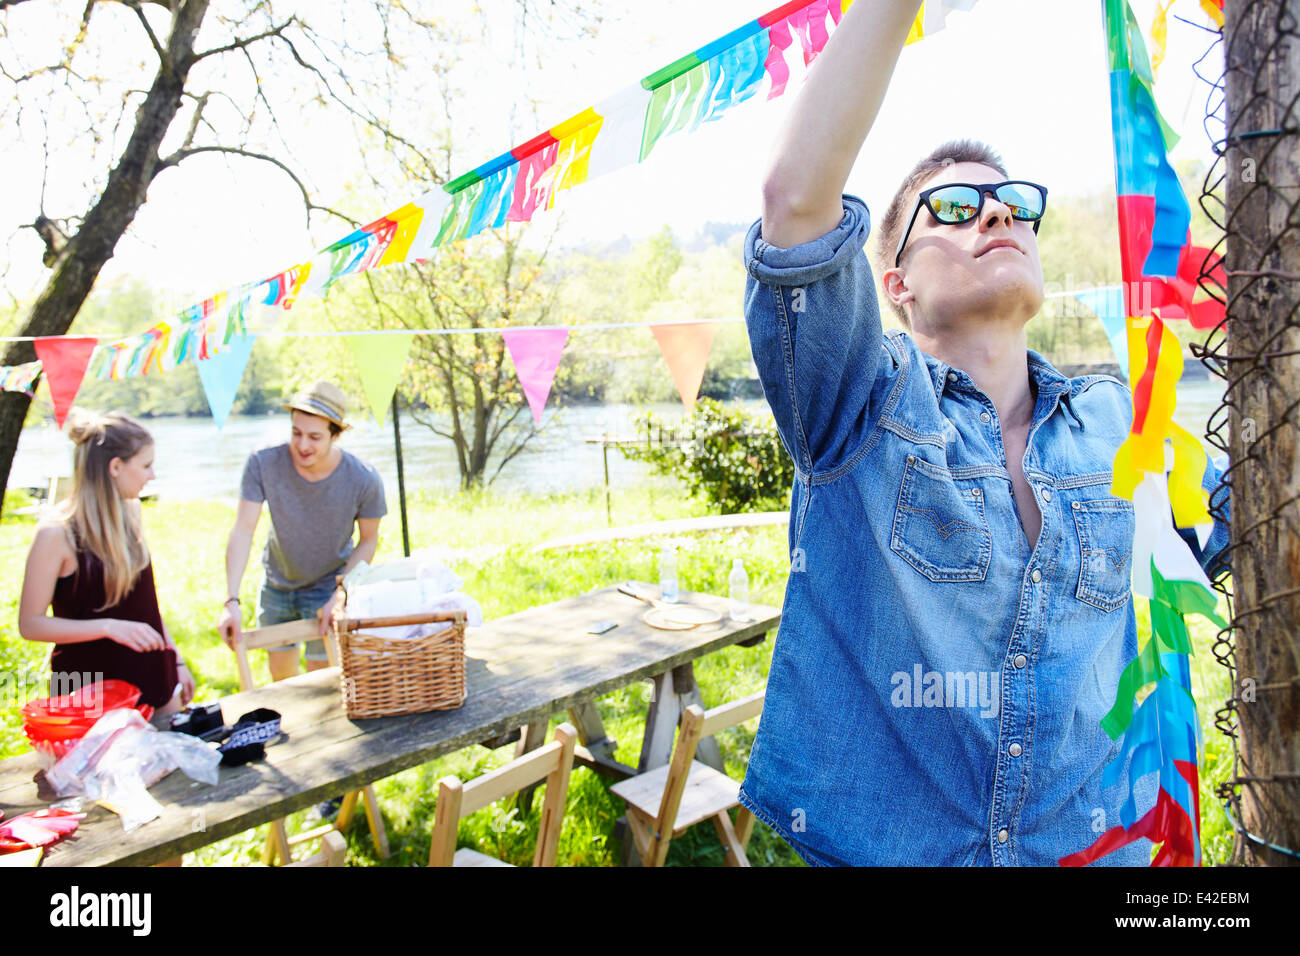 Young man hanging up bunting - Stock Image